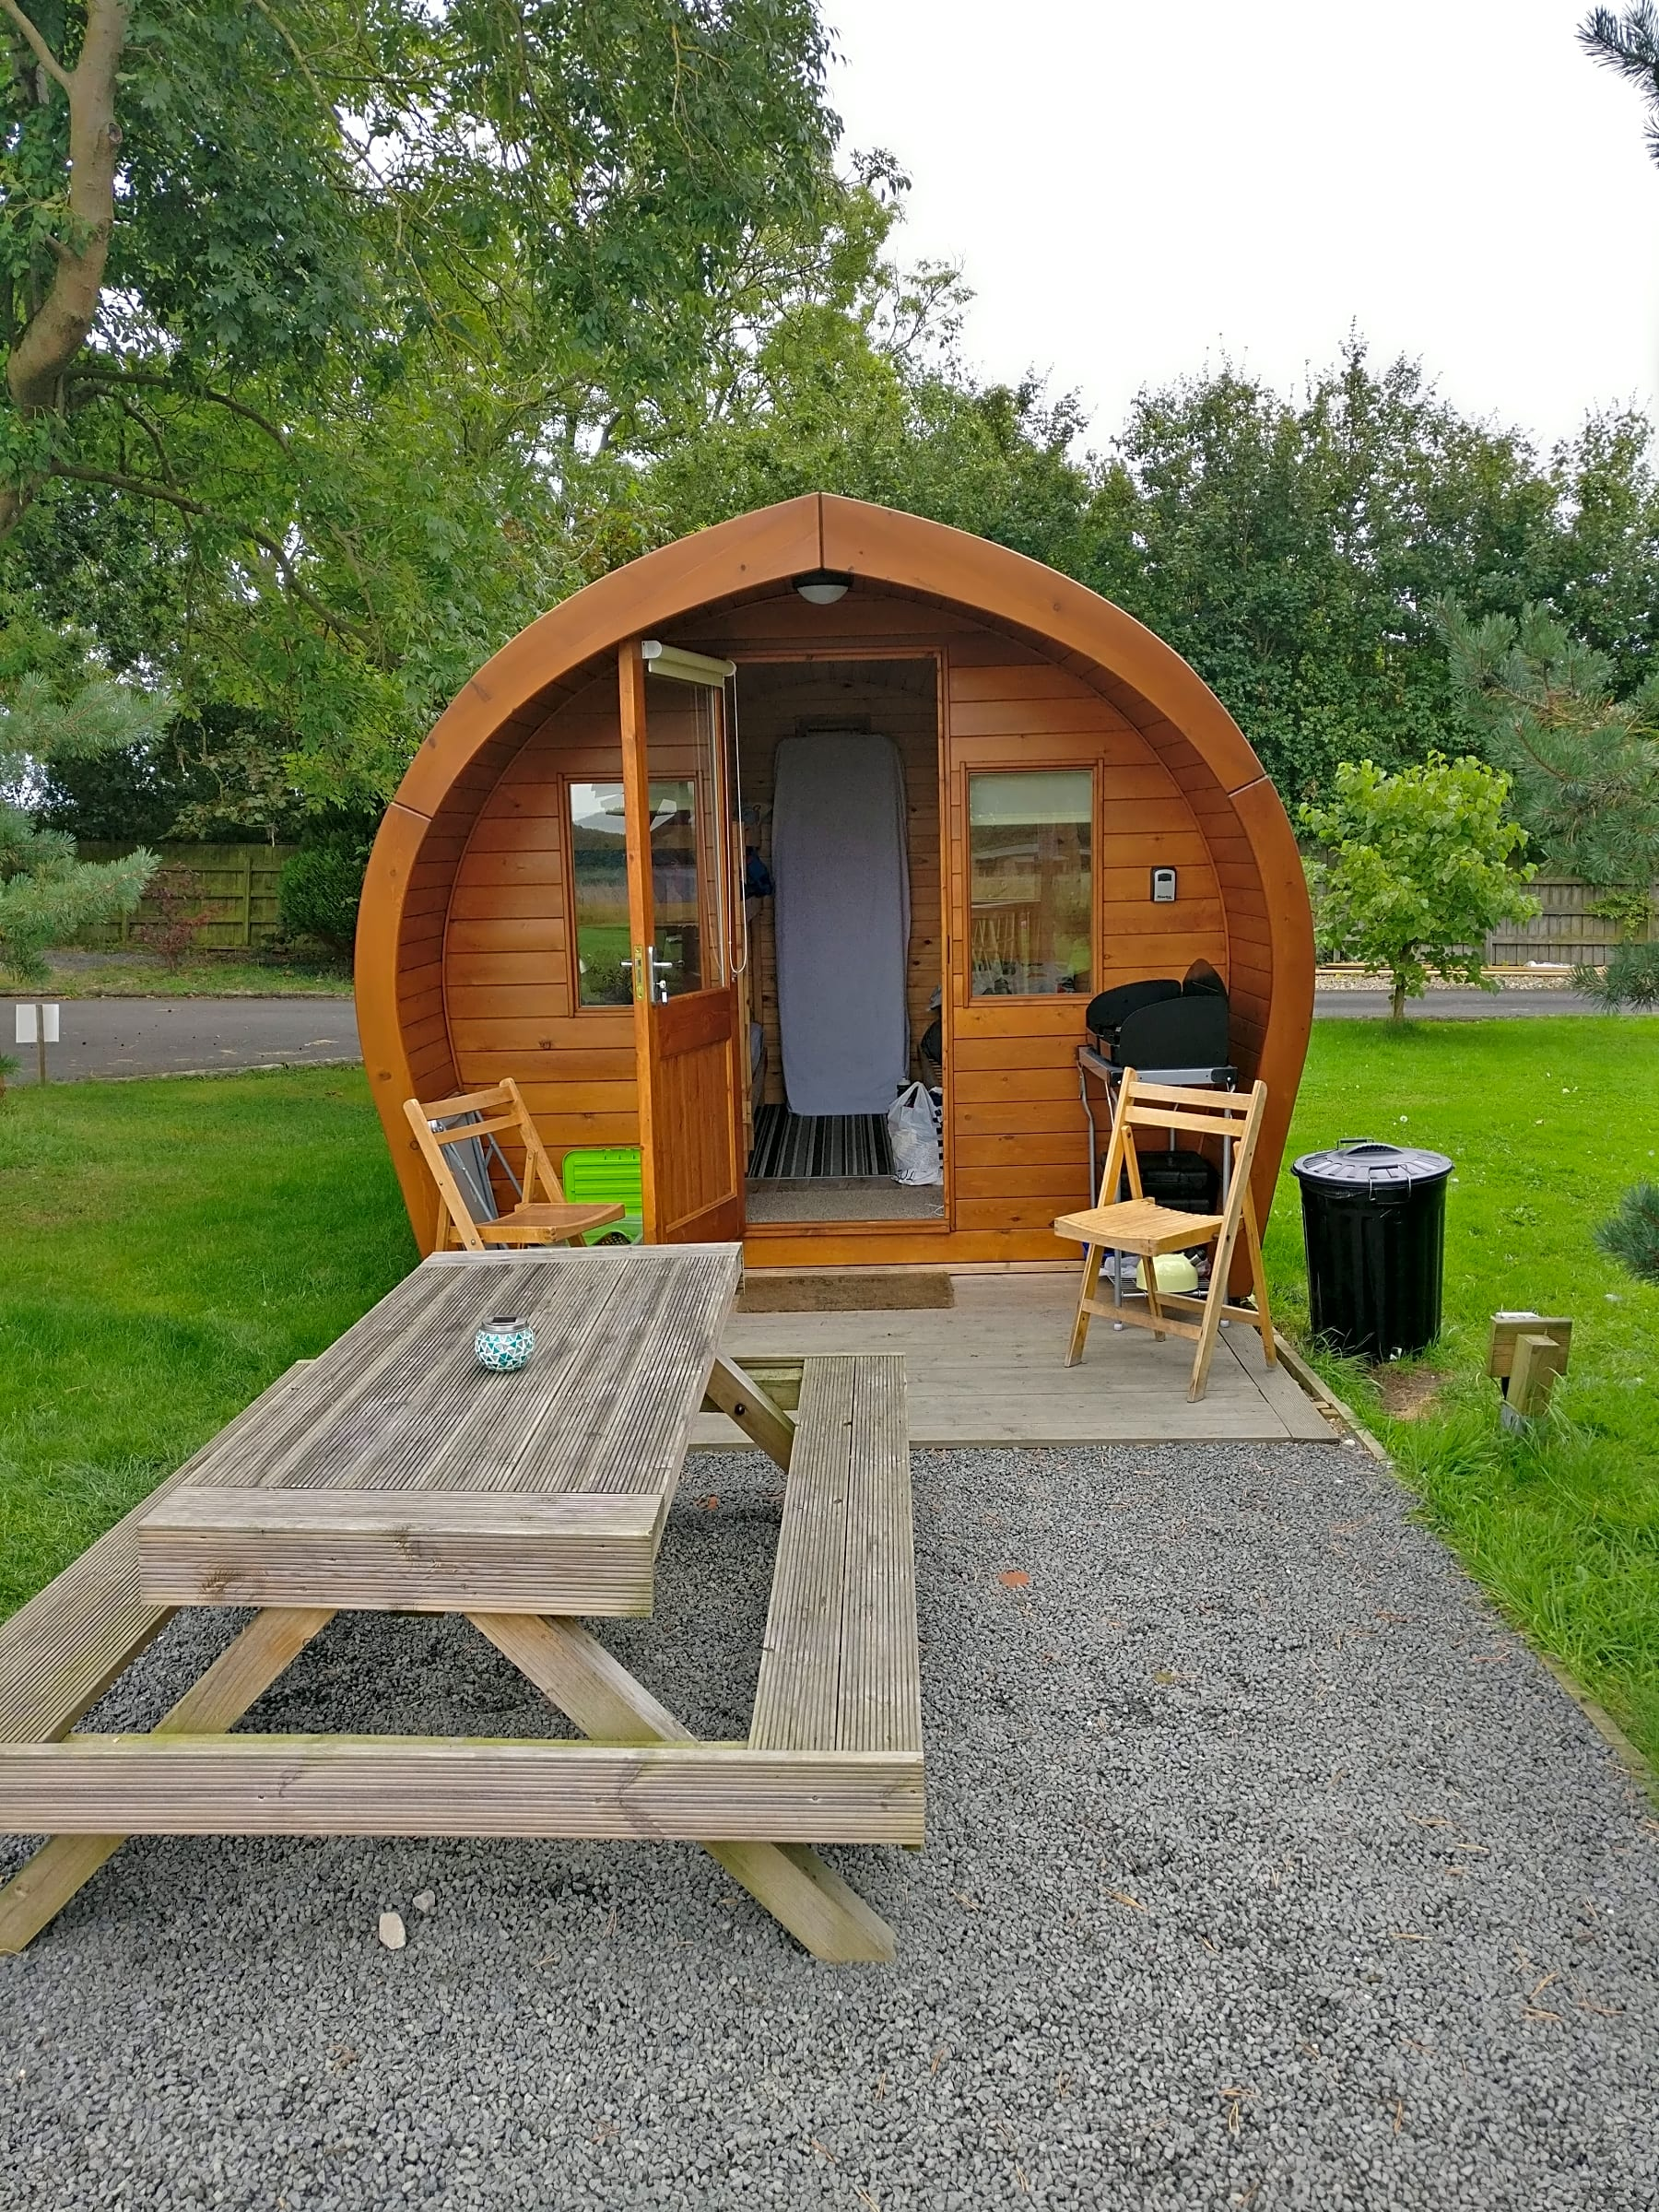 Woodpecker Pods, Helmsley - Updated 2019 prices - Pitchup®